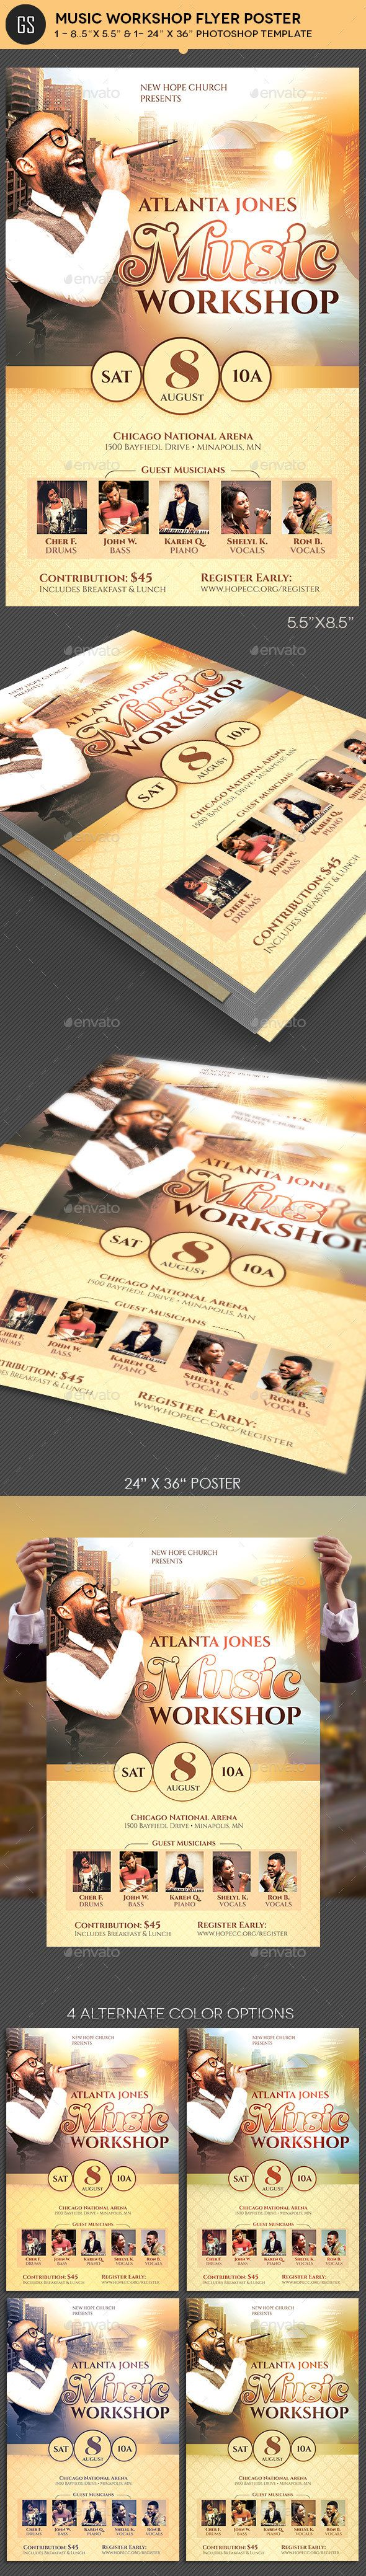 Music workshop flyer poster template template photoshop and flyer music workshop flyer poster template photoshop psd artist flyer available here saigontimesfo